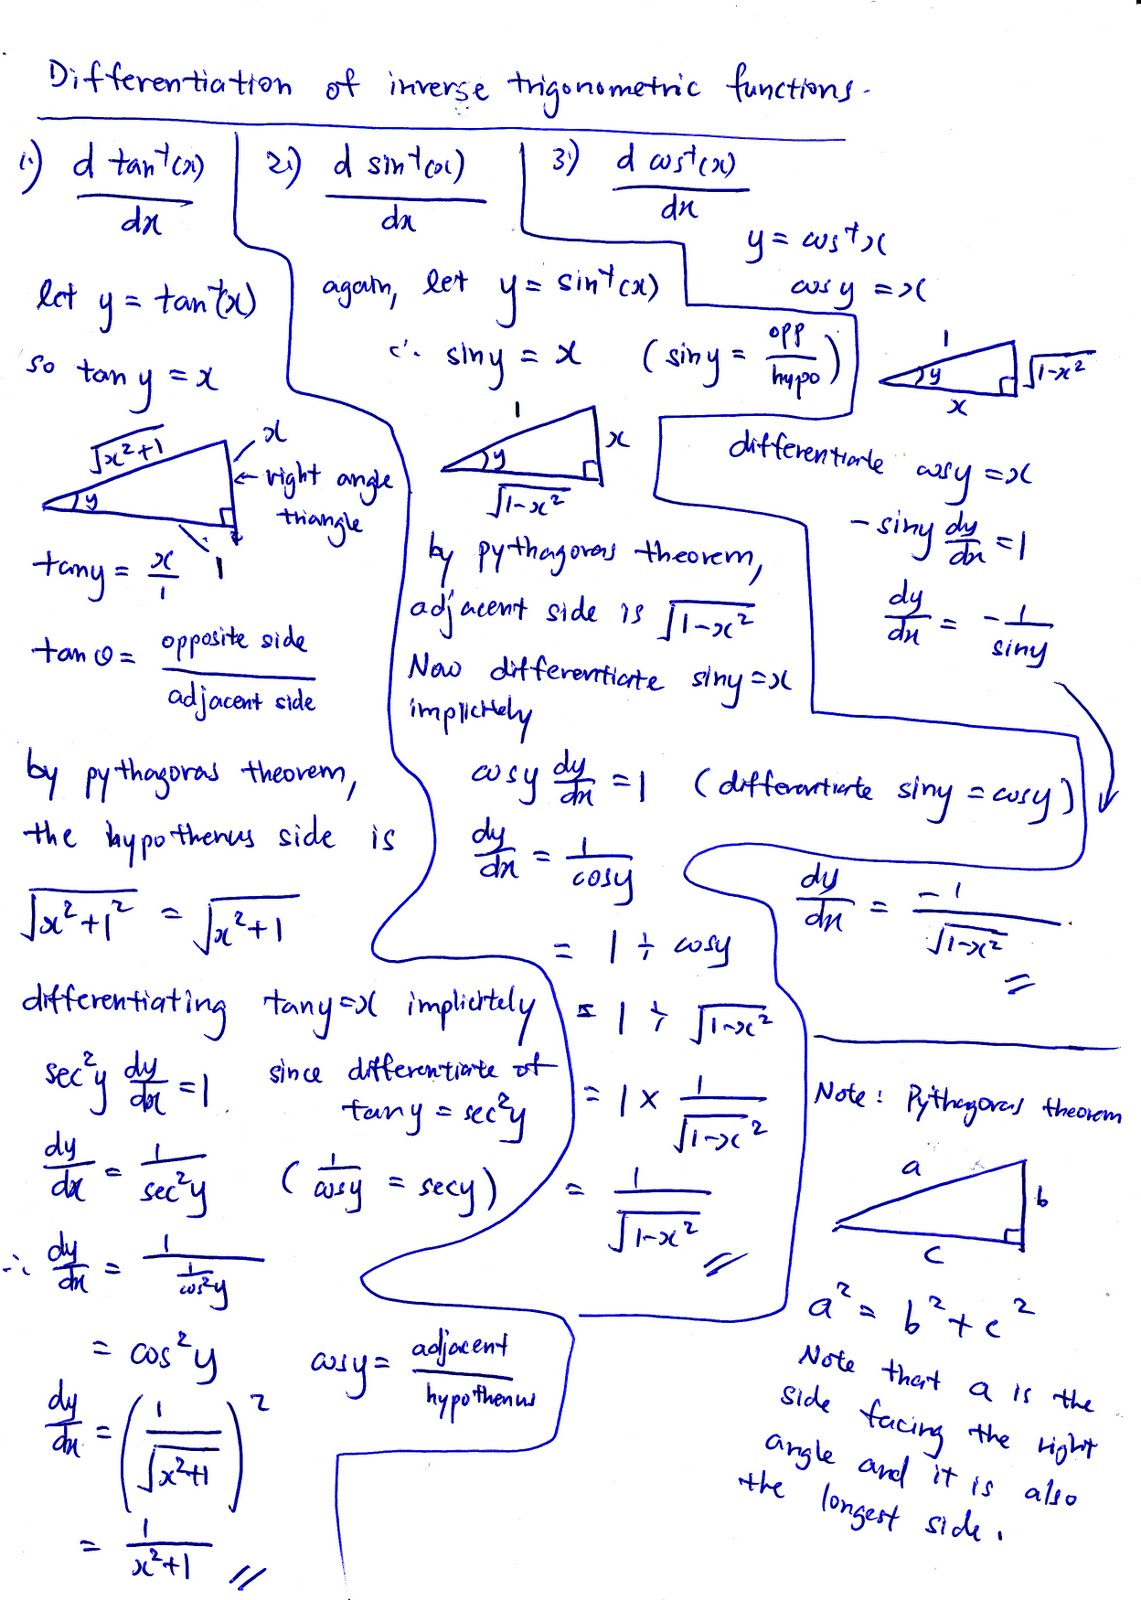 The Maths Clinic Differentiation Of Inverse Trigonometric